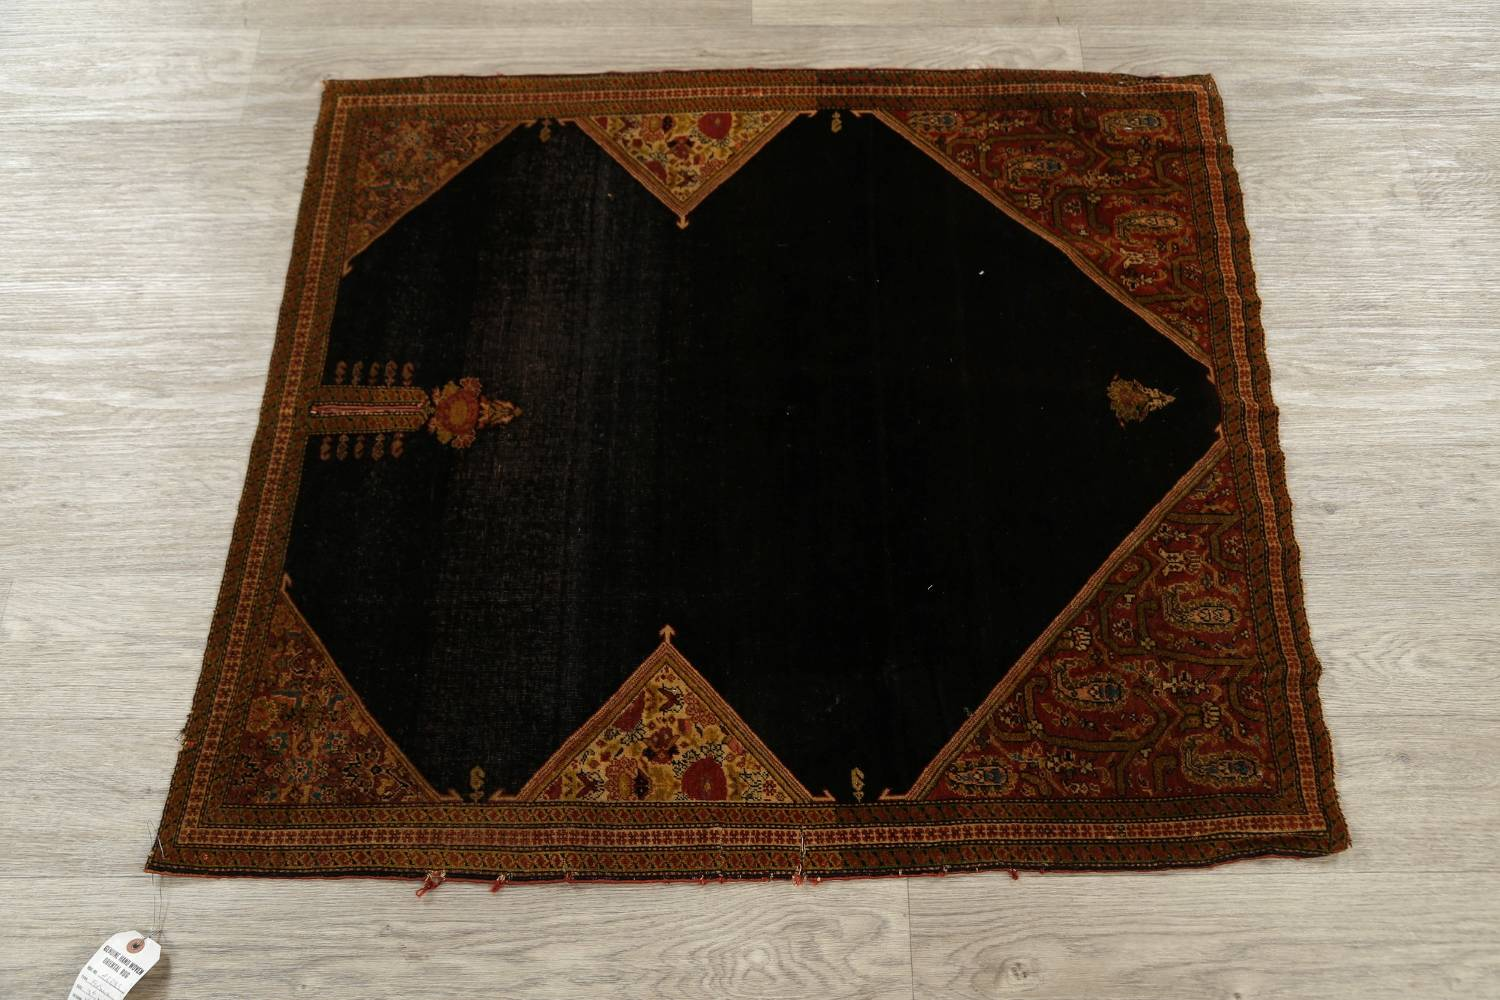 Pre-1900 Vegetable Dye Sarouk Farahan Persian Hand-Knotted 3x3 Square Rug image 14